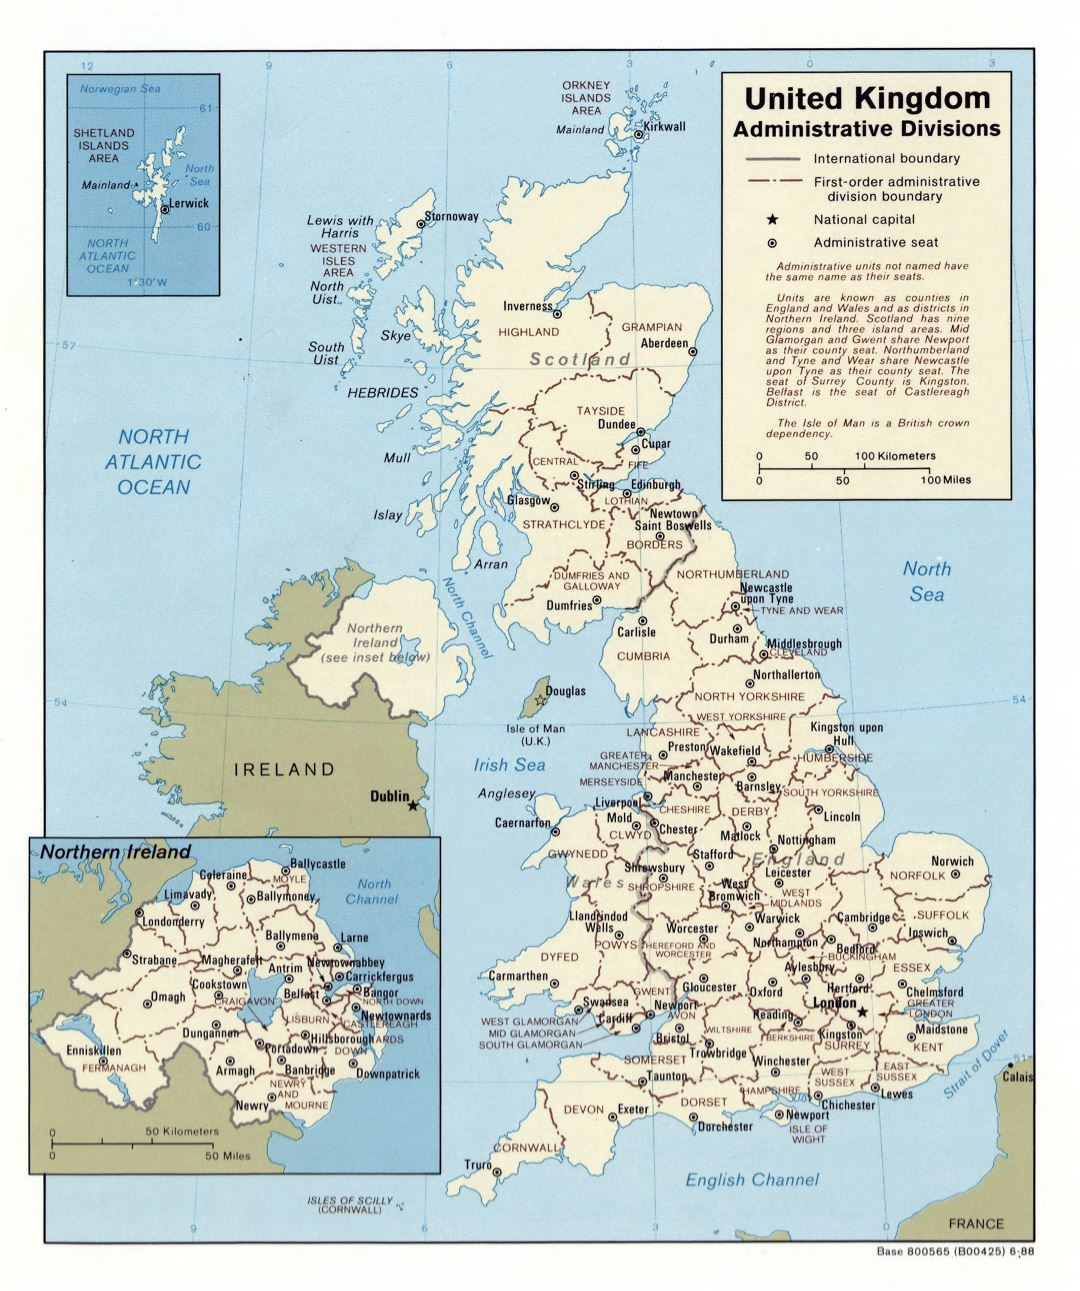 Large detailed administrative divisions map of United Kingdom - 1988